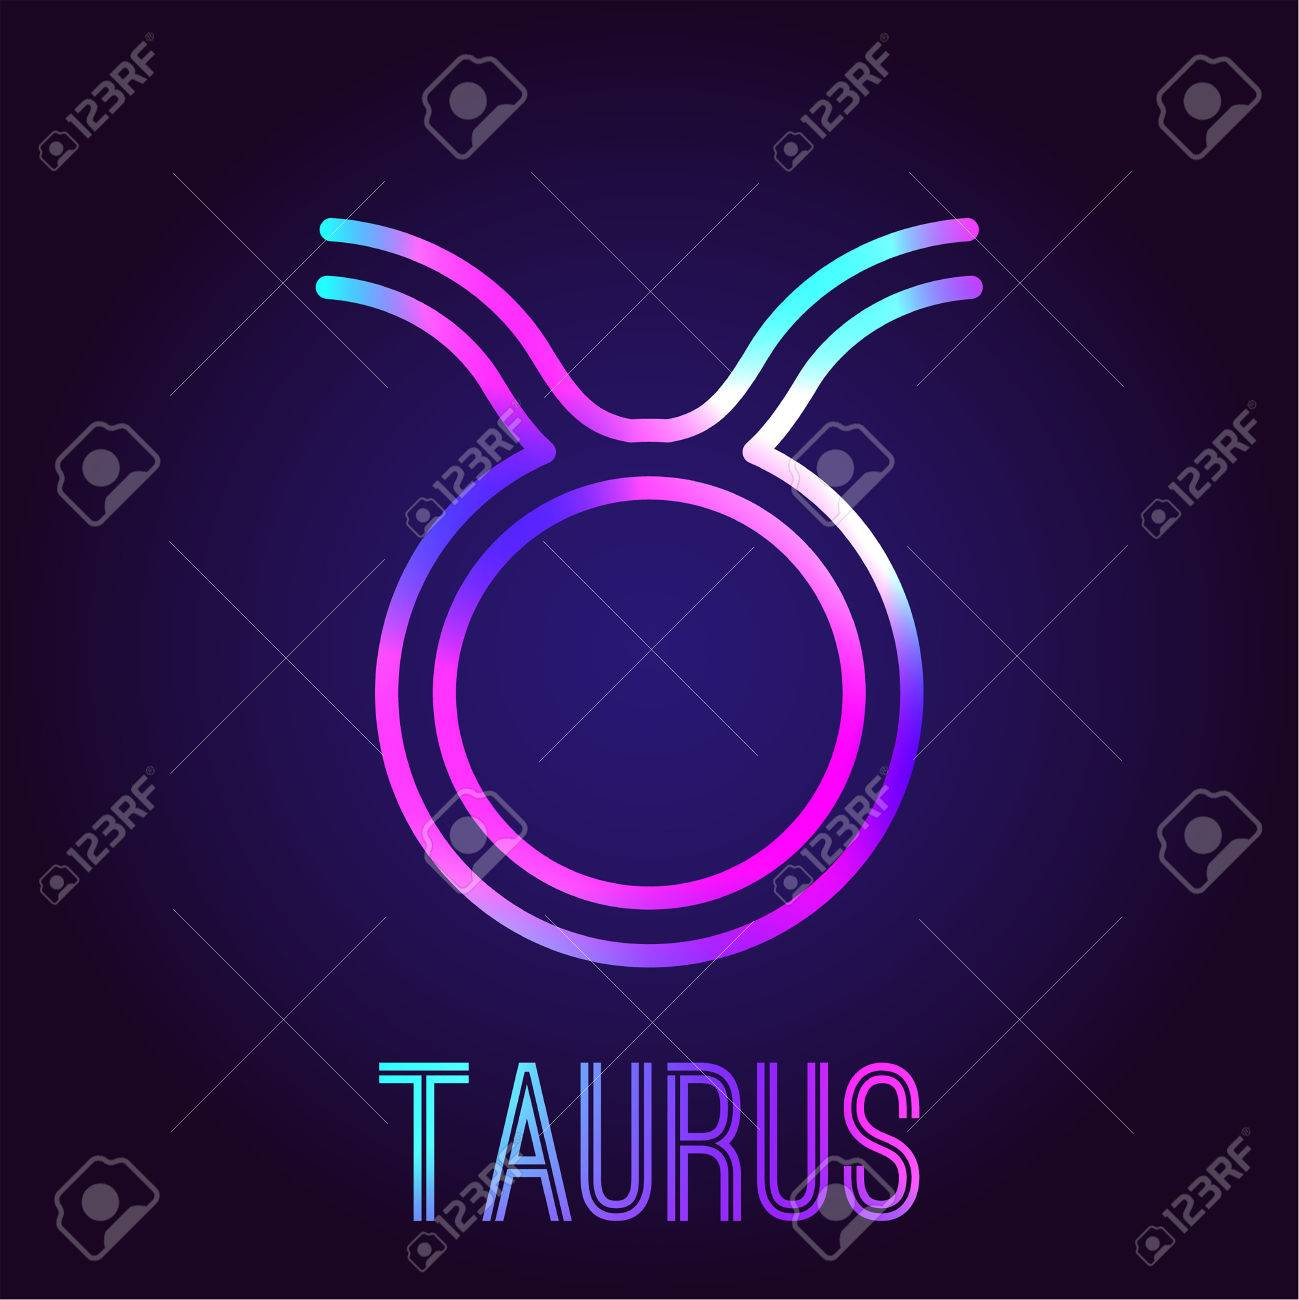 taurus zodiac sign the